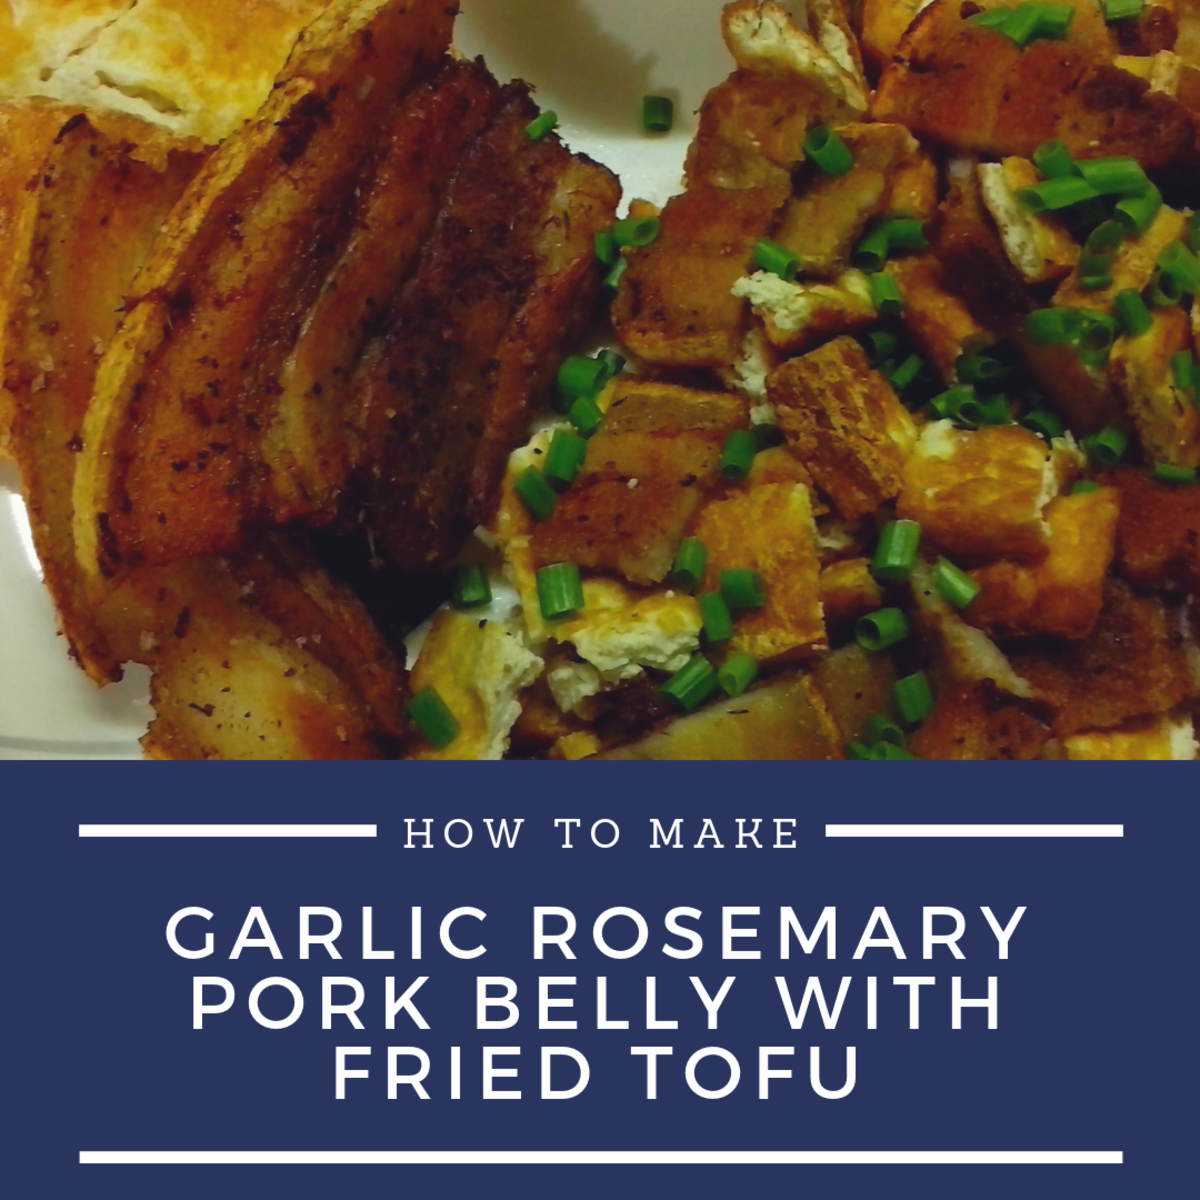 How to Make Garlic Rosemary Pork Belly With Fried Tofu